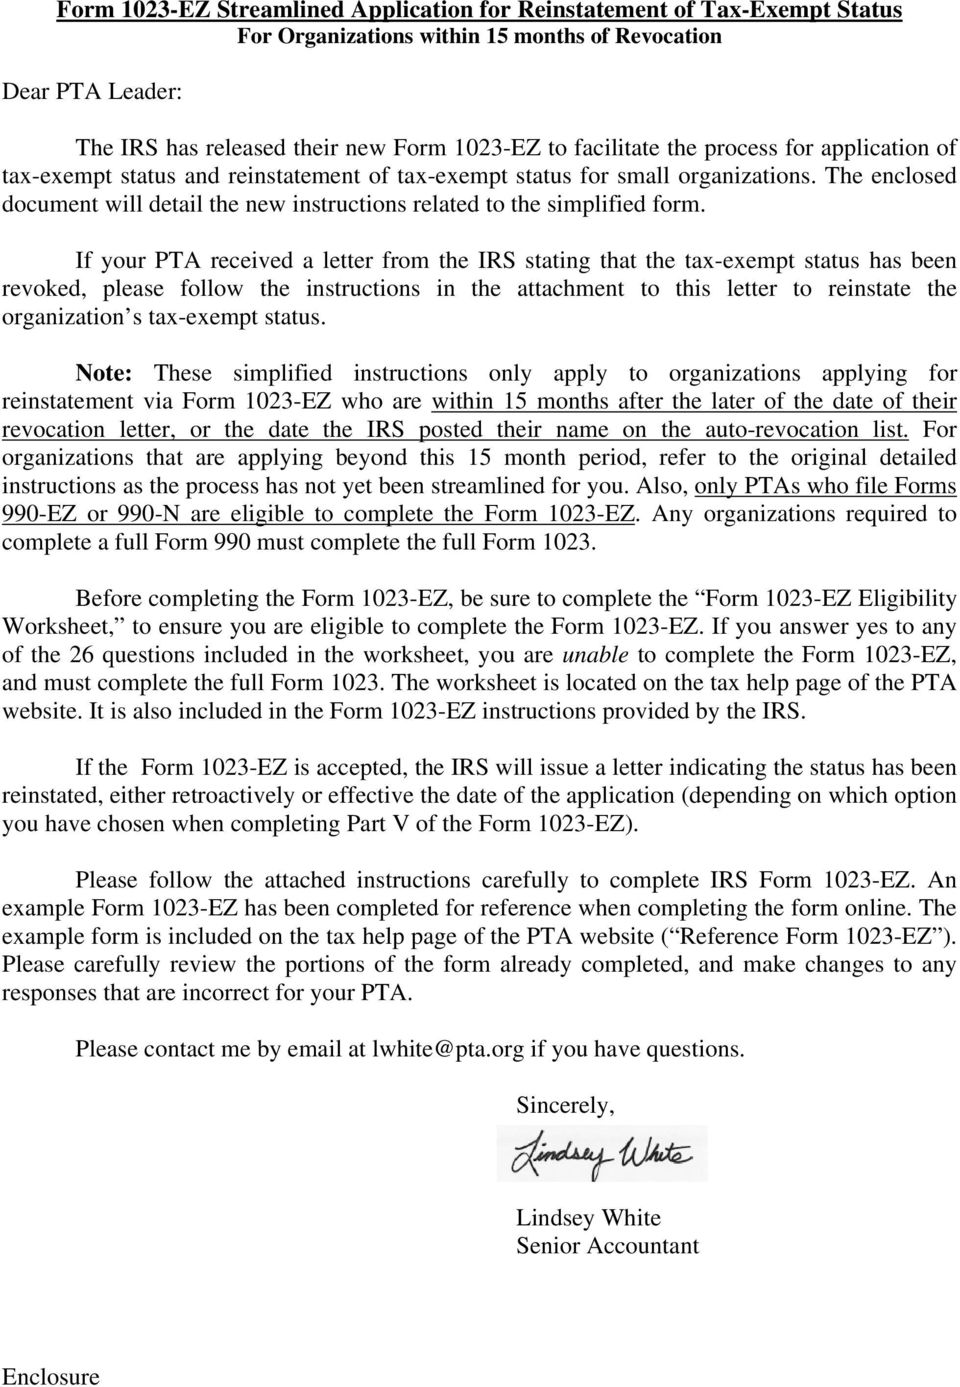 If your PTA received a letter from the IRS stating that the tax-exempt status has been revoked, please follow the instructions in the attachment to this letter to reinstate the organization s